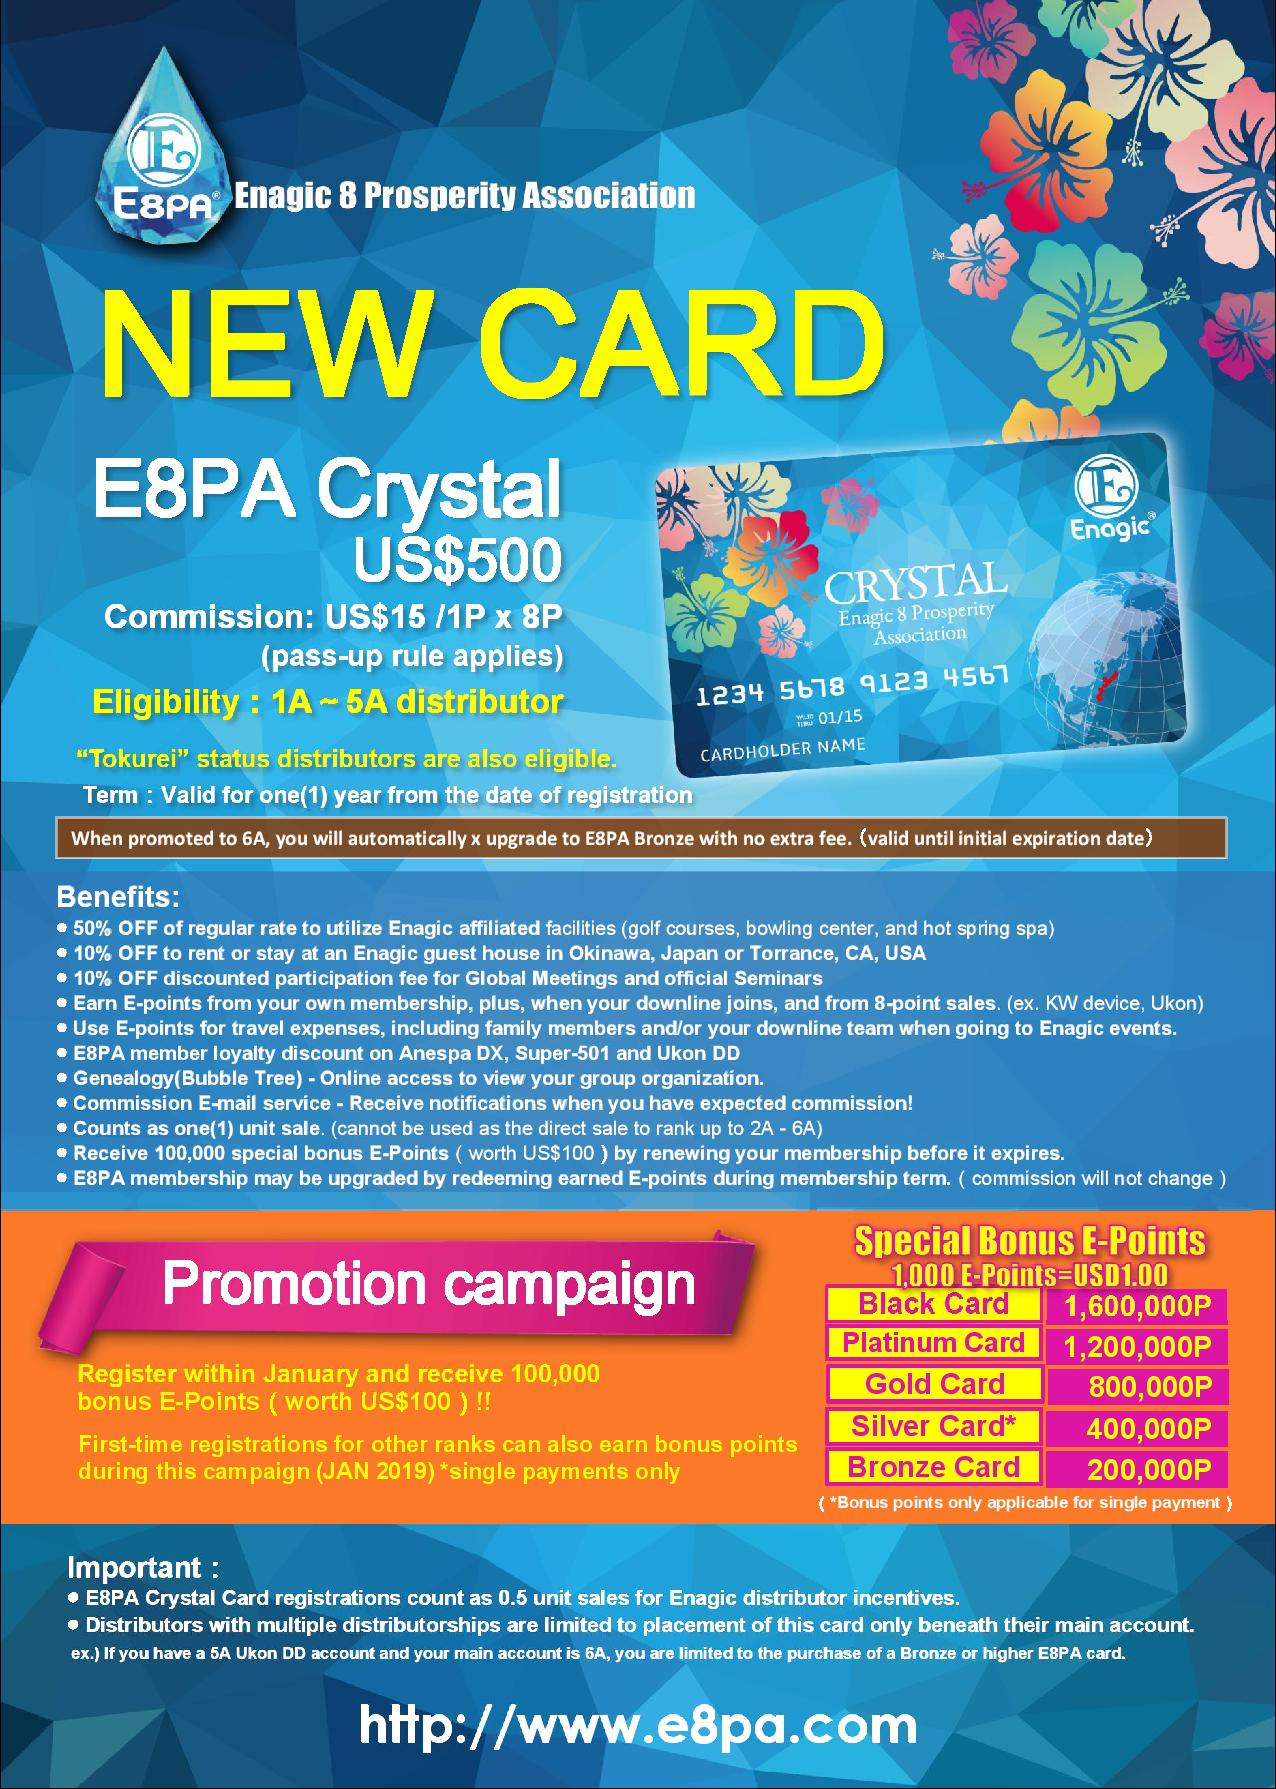 Introducing The New E8PA Crystal Card